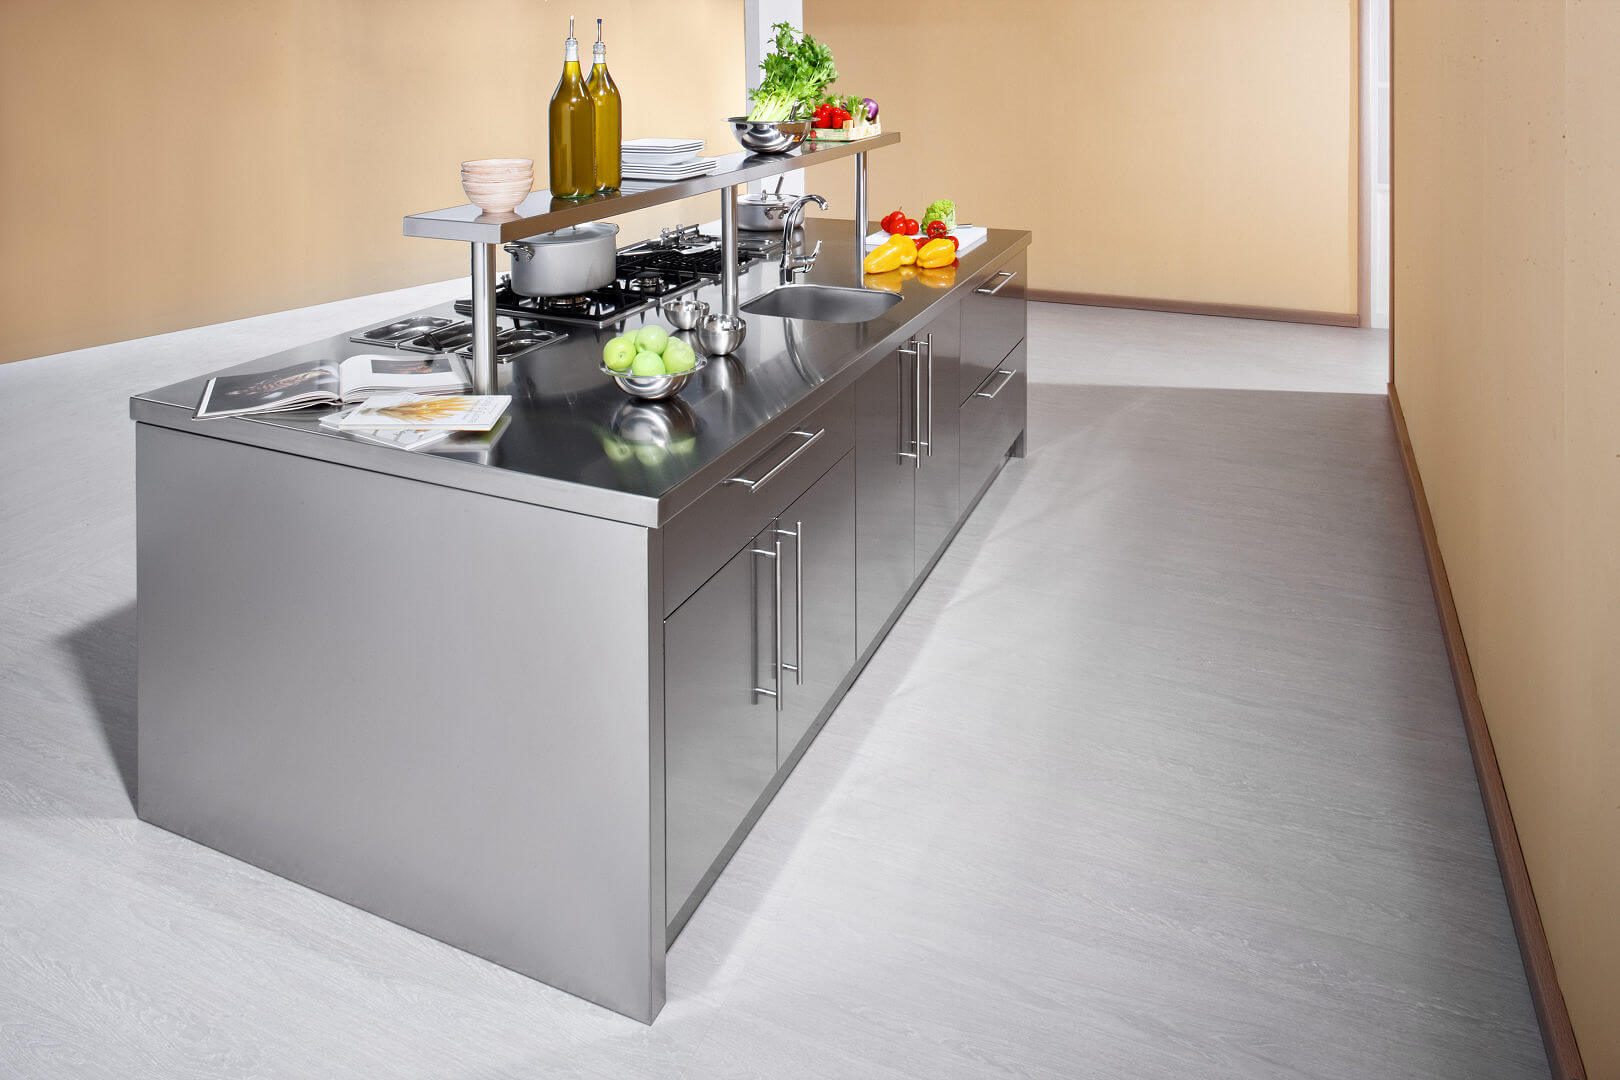 Arca Cucine Italy - Domestic stainless steel kitchens - Workstation - Isola